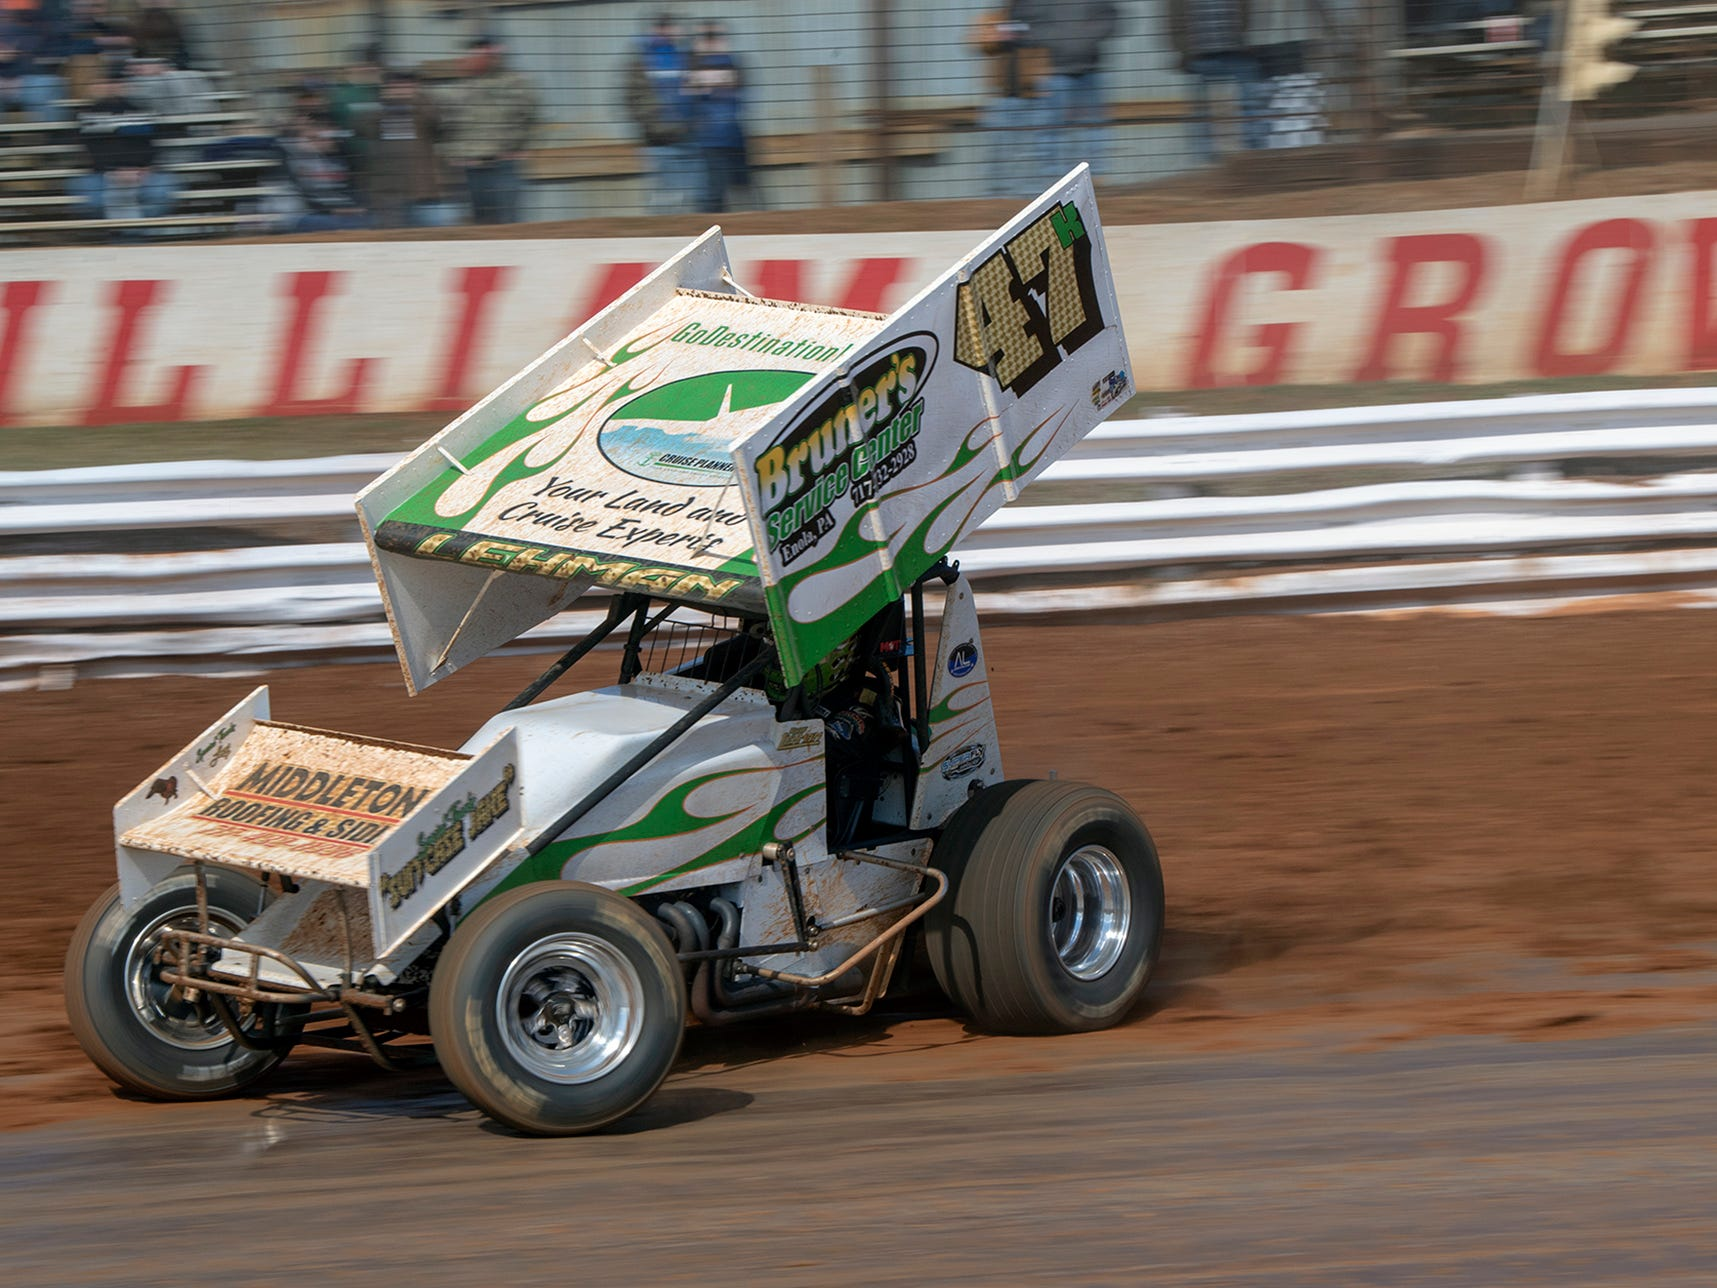 The #47k car driven by Kody Lehman takes a turn during the Williams Grove season opener for 410 sprints Sunday March 17, 2019.